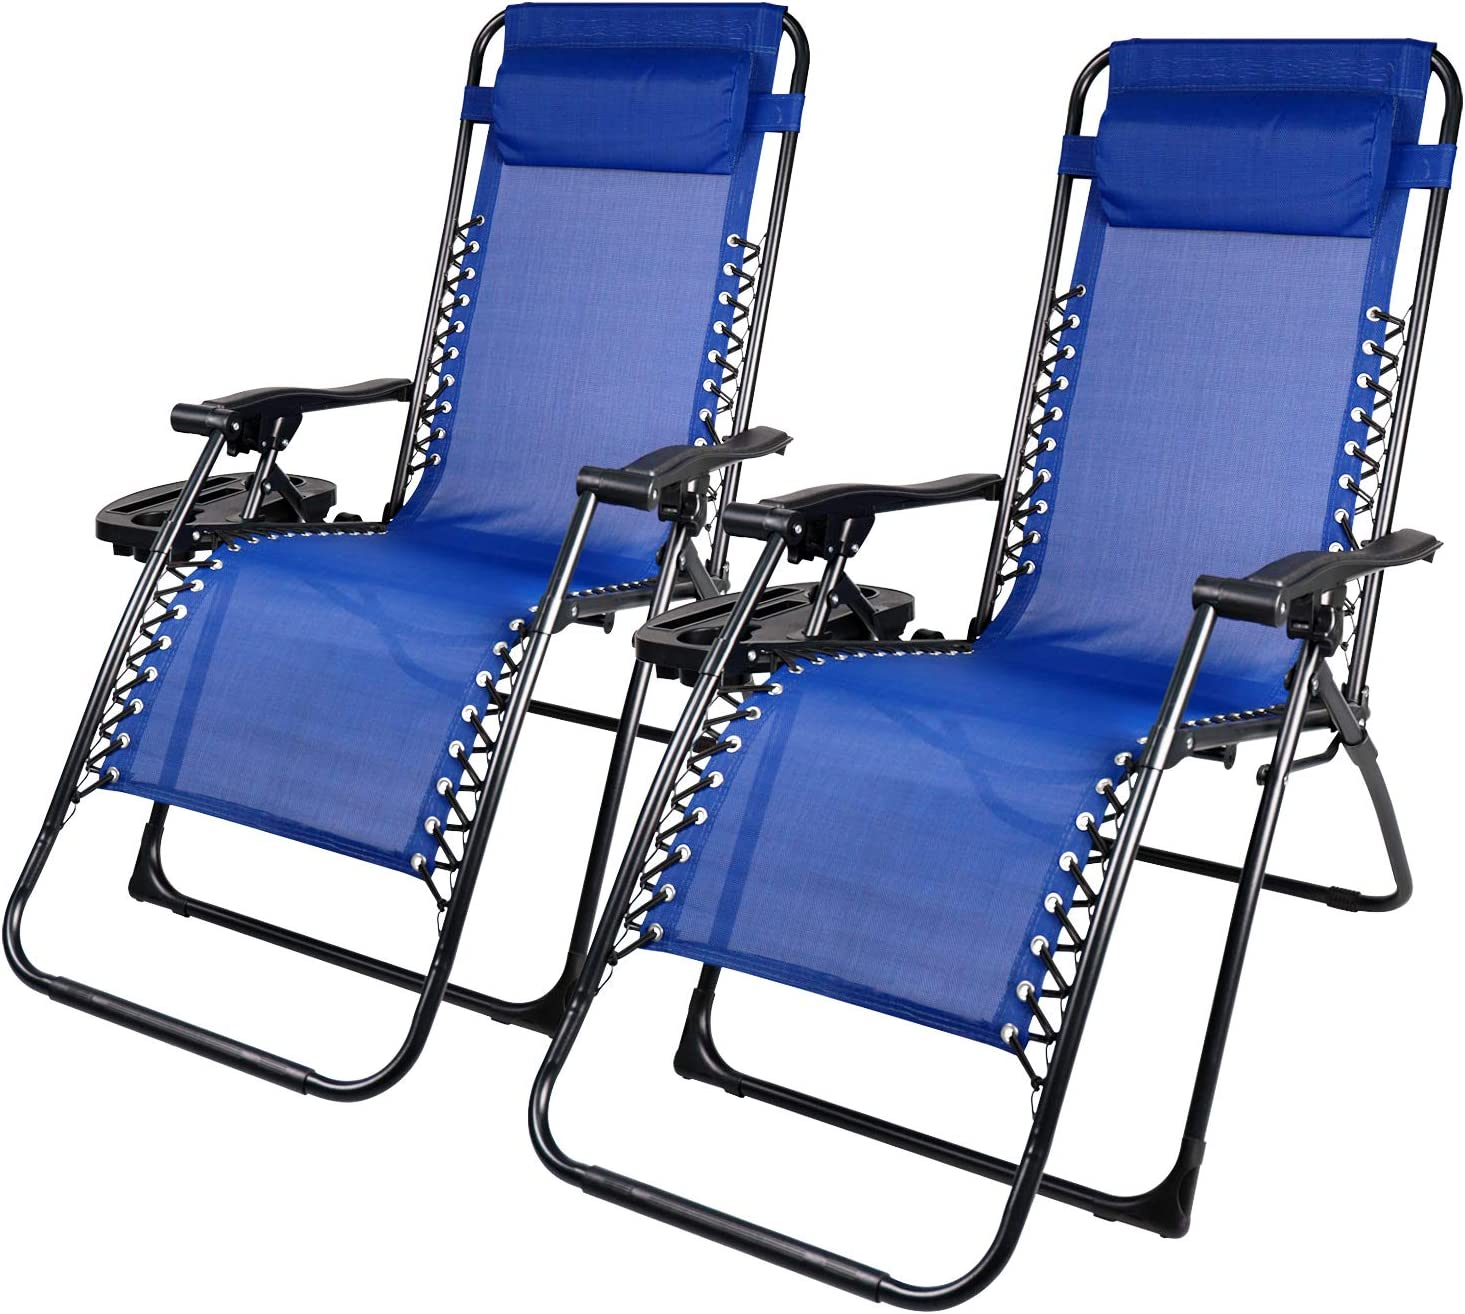 Zero Gravity Chair Lounge Chairs Outdoor Adjustable Camp Reclining Folding Chairs with Cup Holder Pillows for Deck Patio Beach Yard, Set of 2